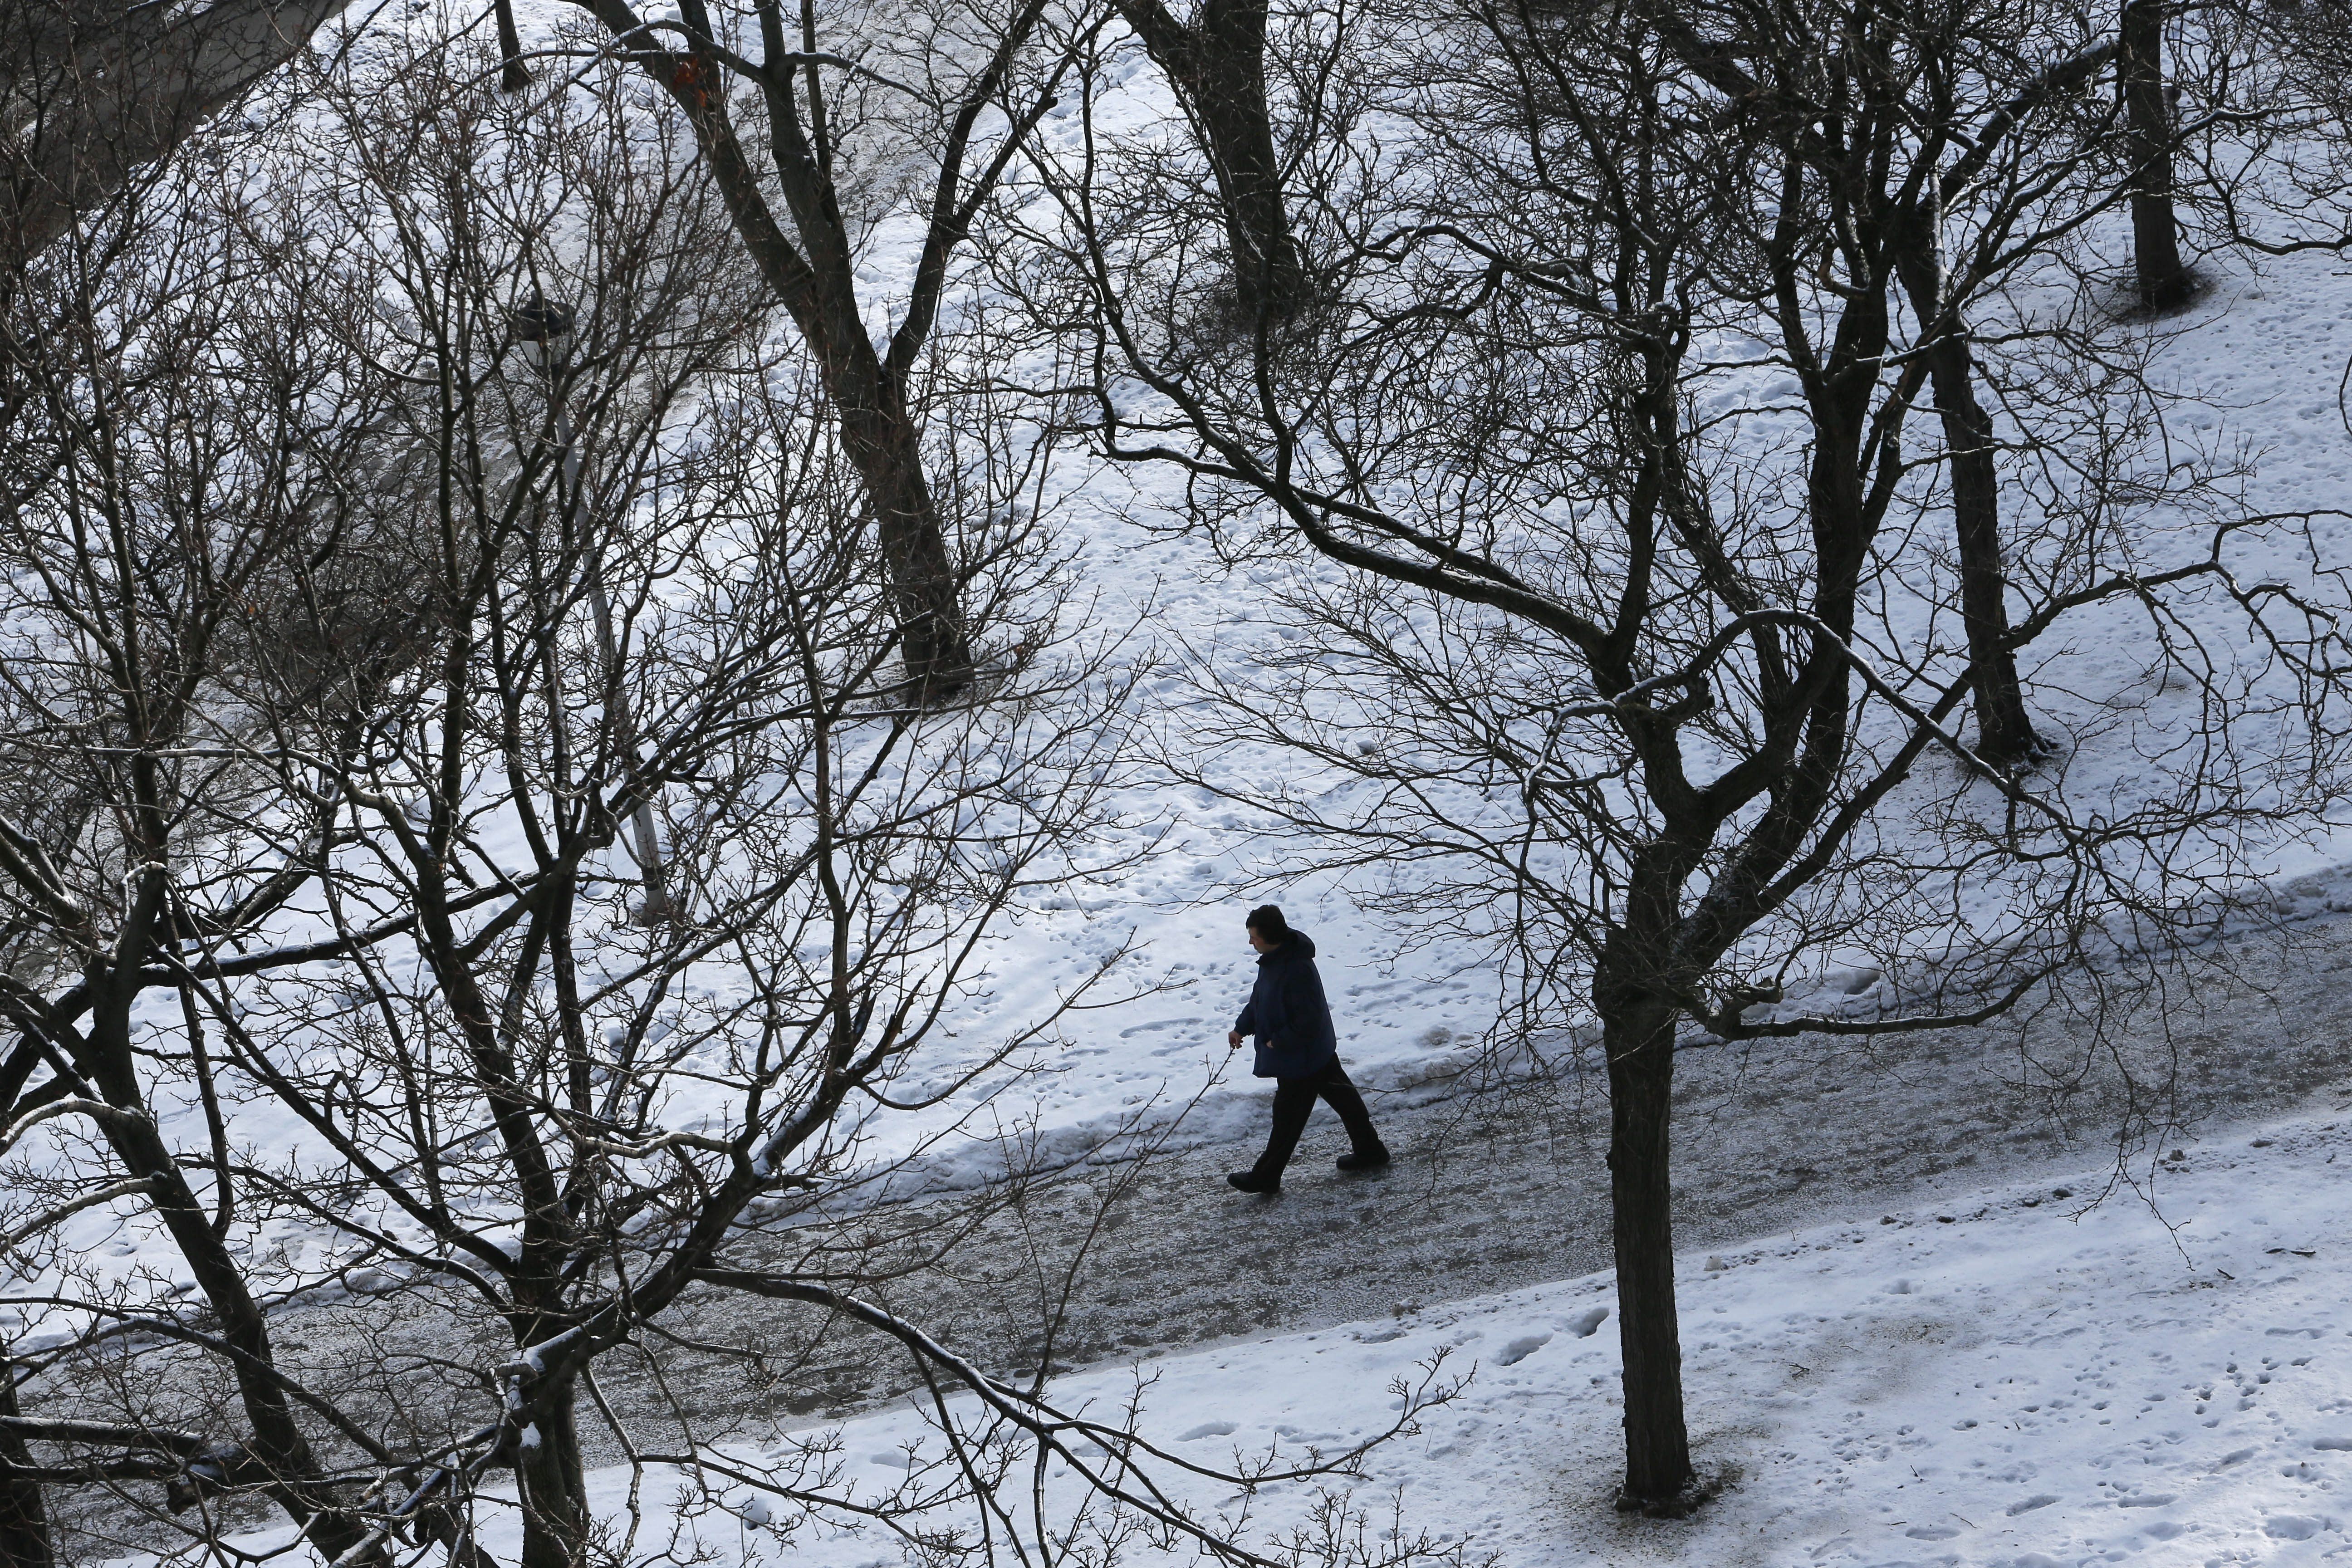 A pedestrian walks on the path through the trees in Fireman's Park on North Division Street Monday.